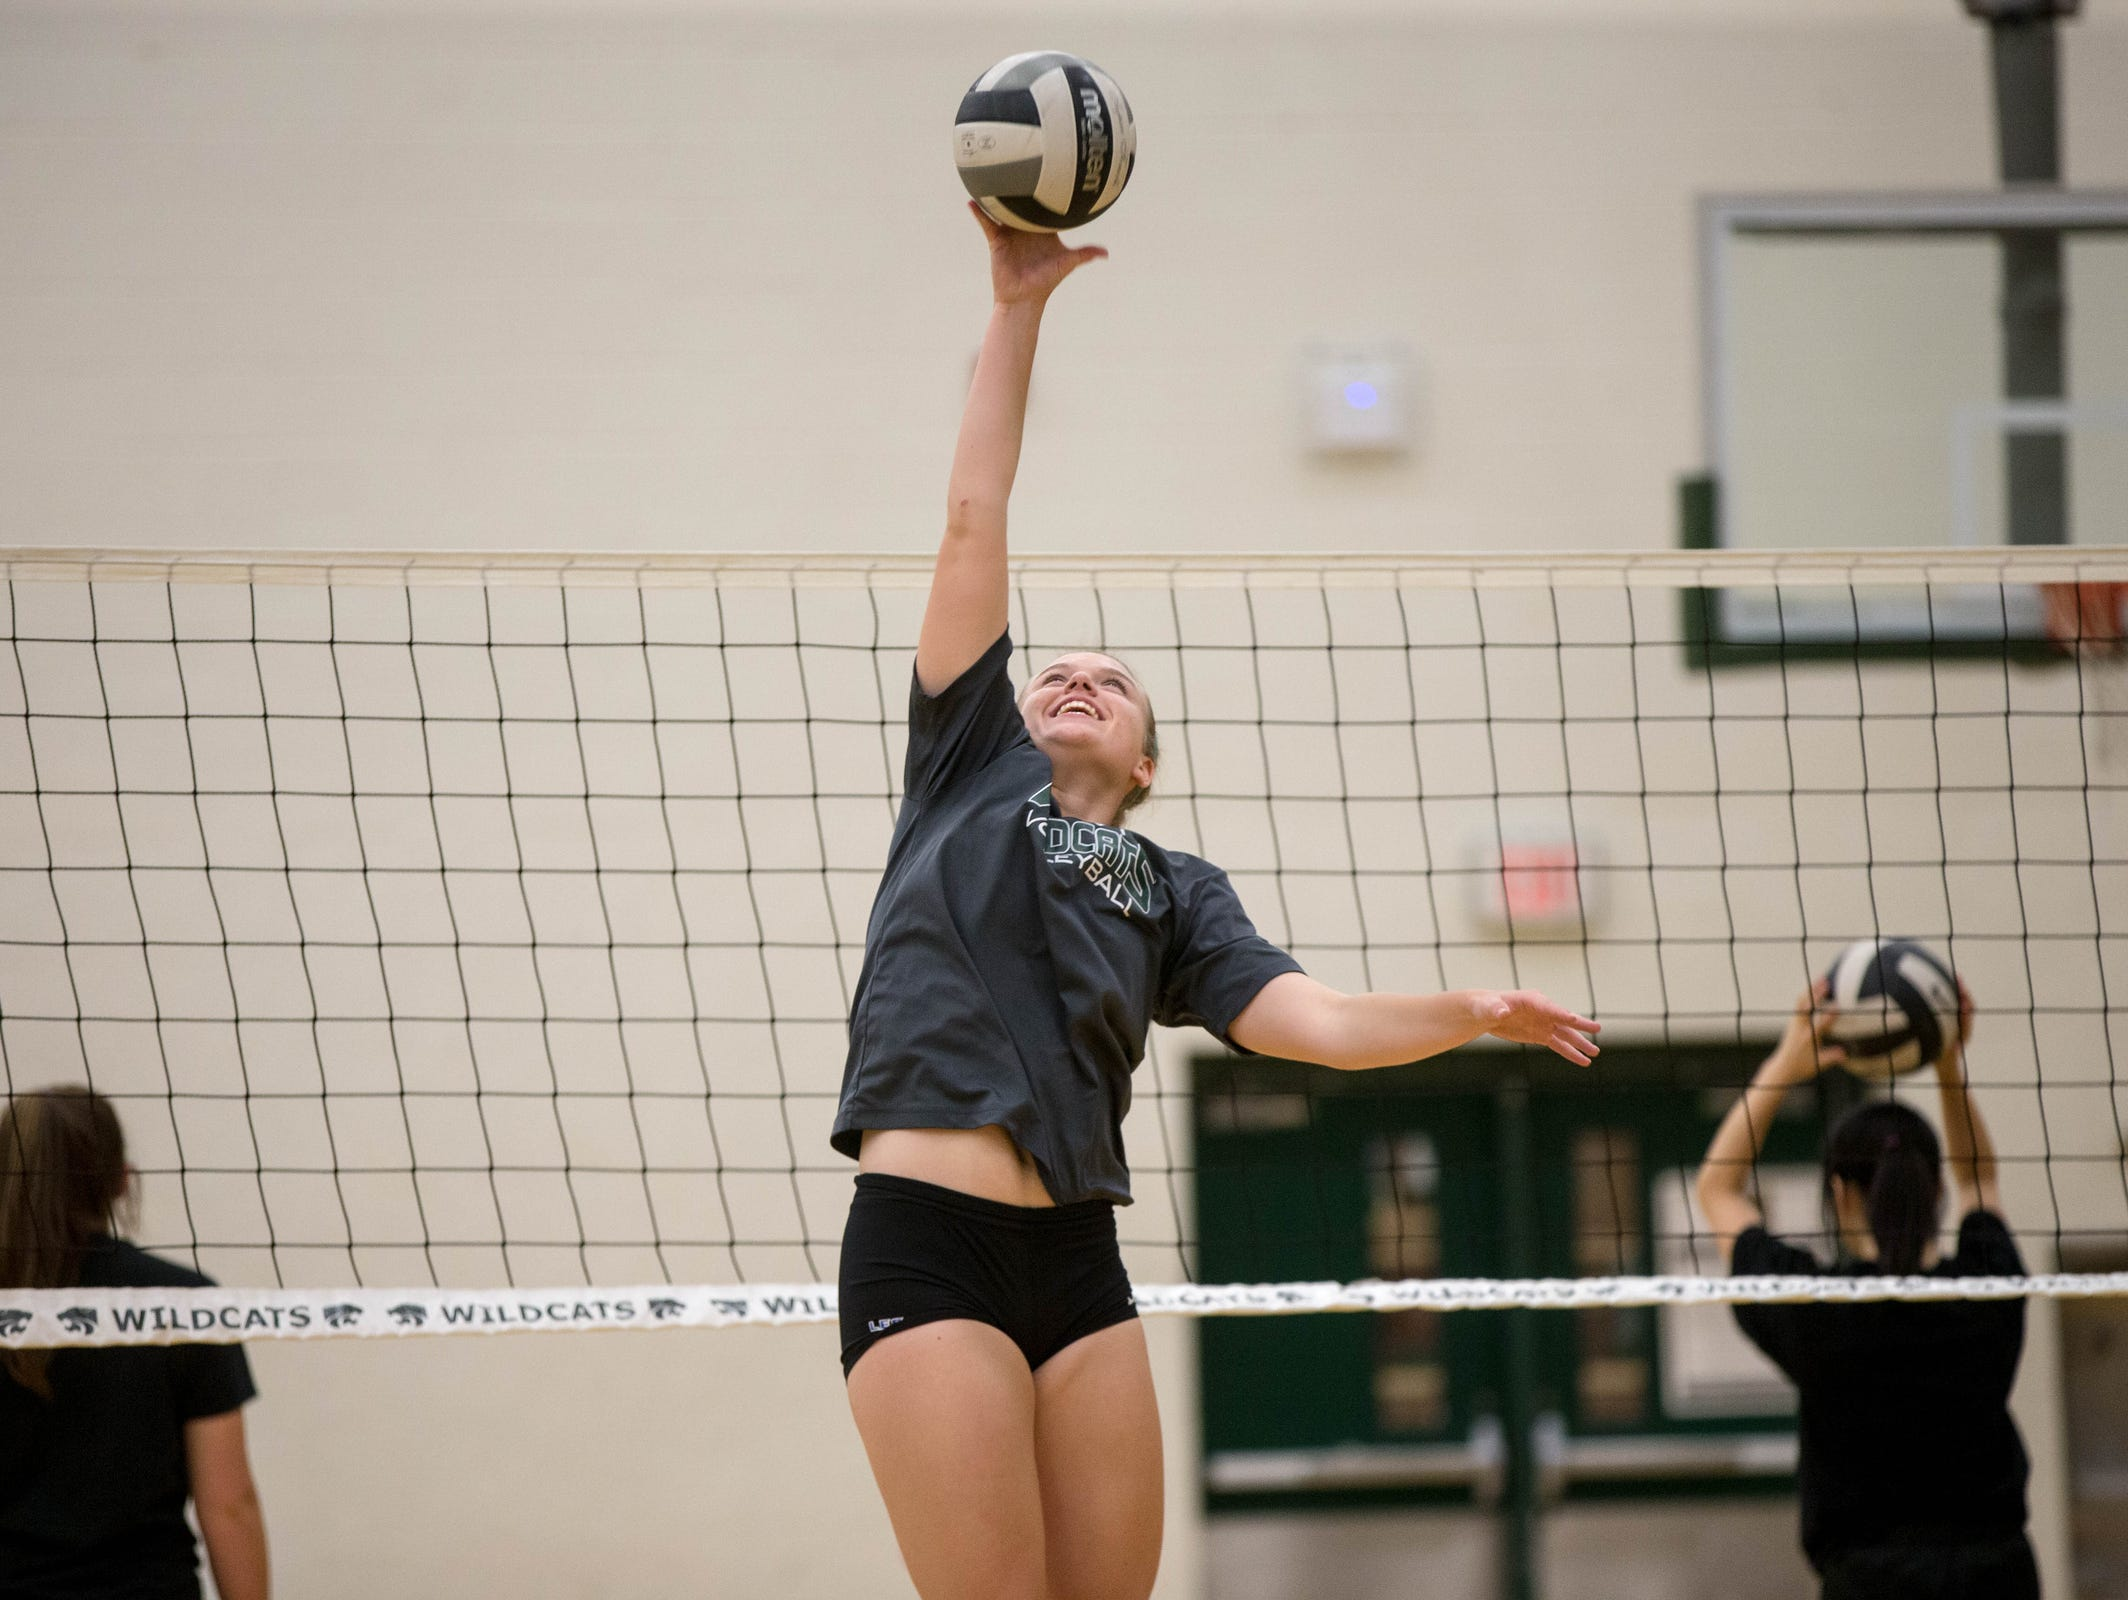 Erin O'Leary goes up for the ball during volleyball tryouts on Wednesday, Aug. 10. 2016 at Novi High School in Novi.